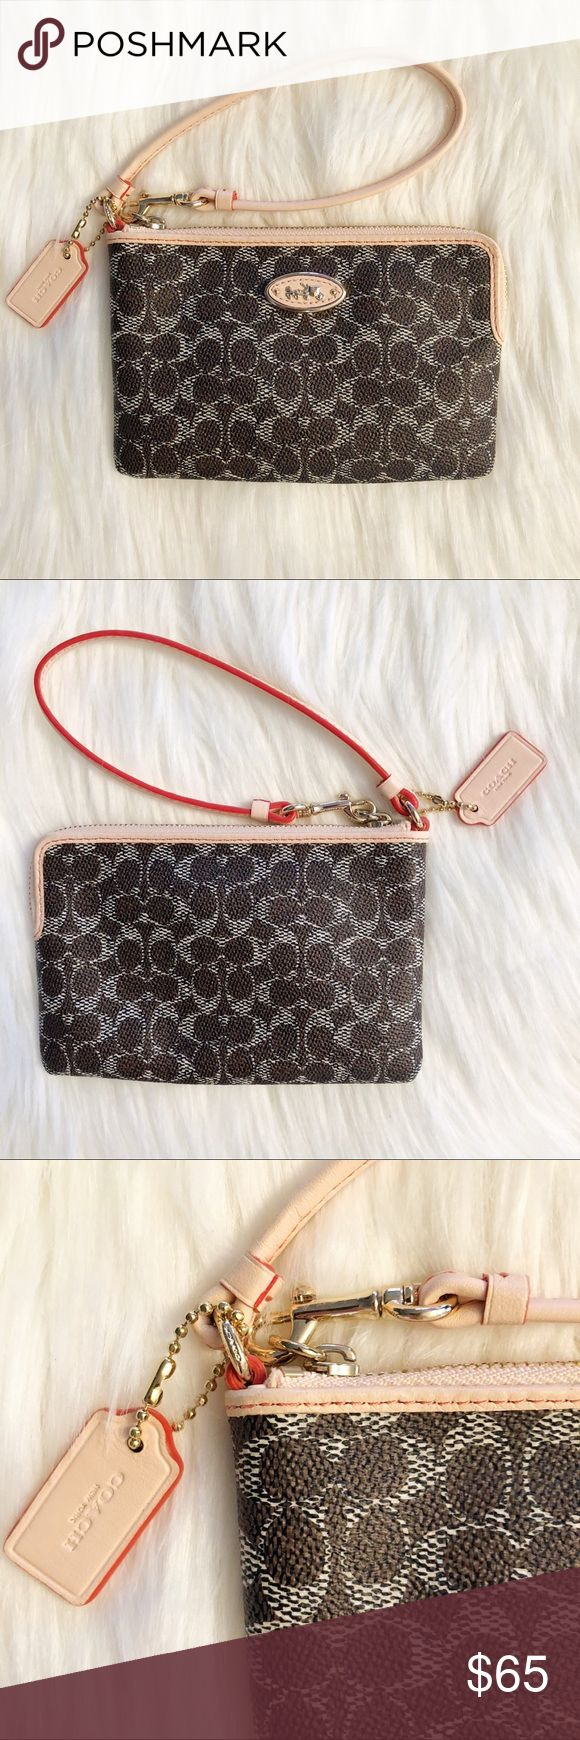 ↠NWT↞ Coach Clutch/Wallet BRAND NEW WITH TAGS! Authentic Coach clutch wallet. Includes tags, care instructions and note of authentication. Brown, light peach and dark peach trim and interior. Inside pockets. Coach Bags Clutches & Wristlets